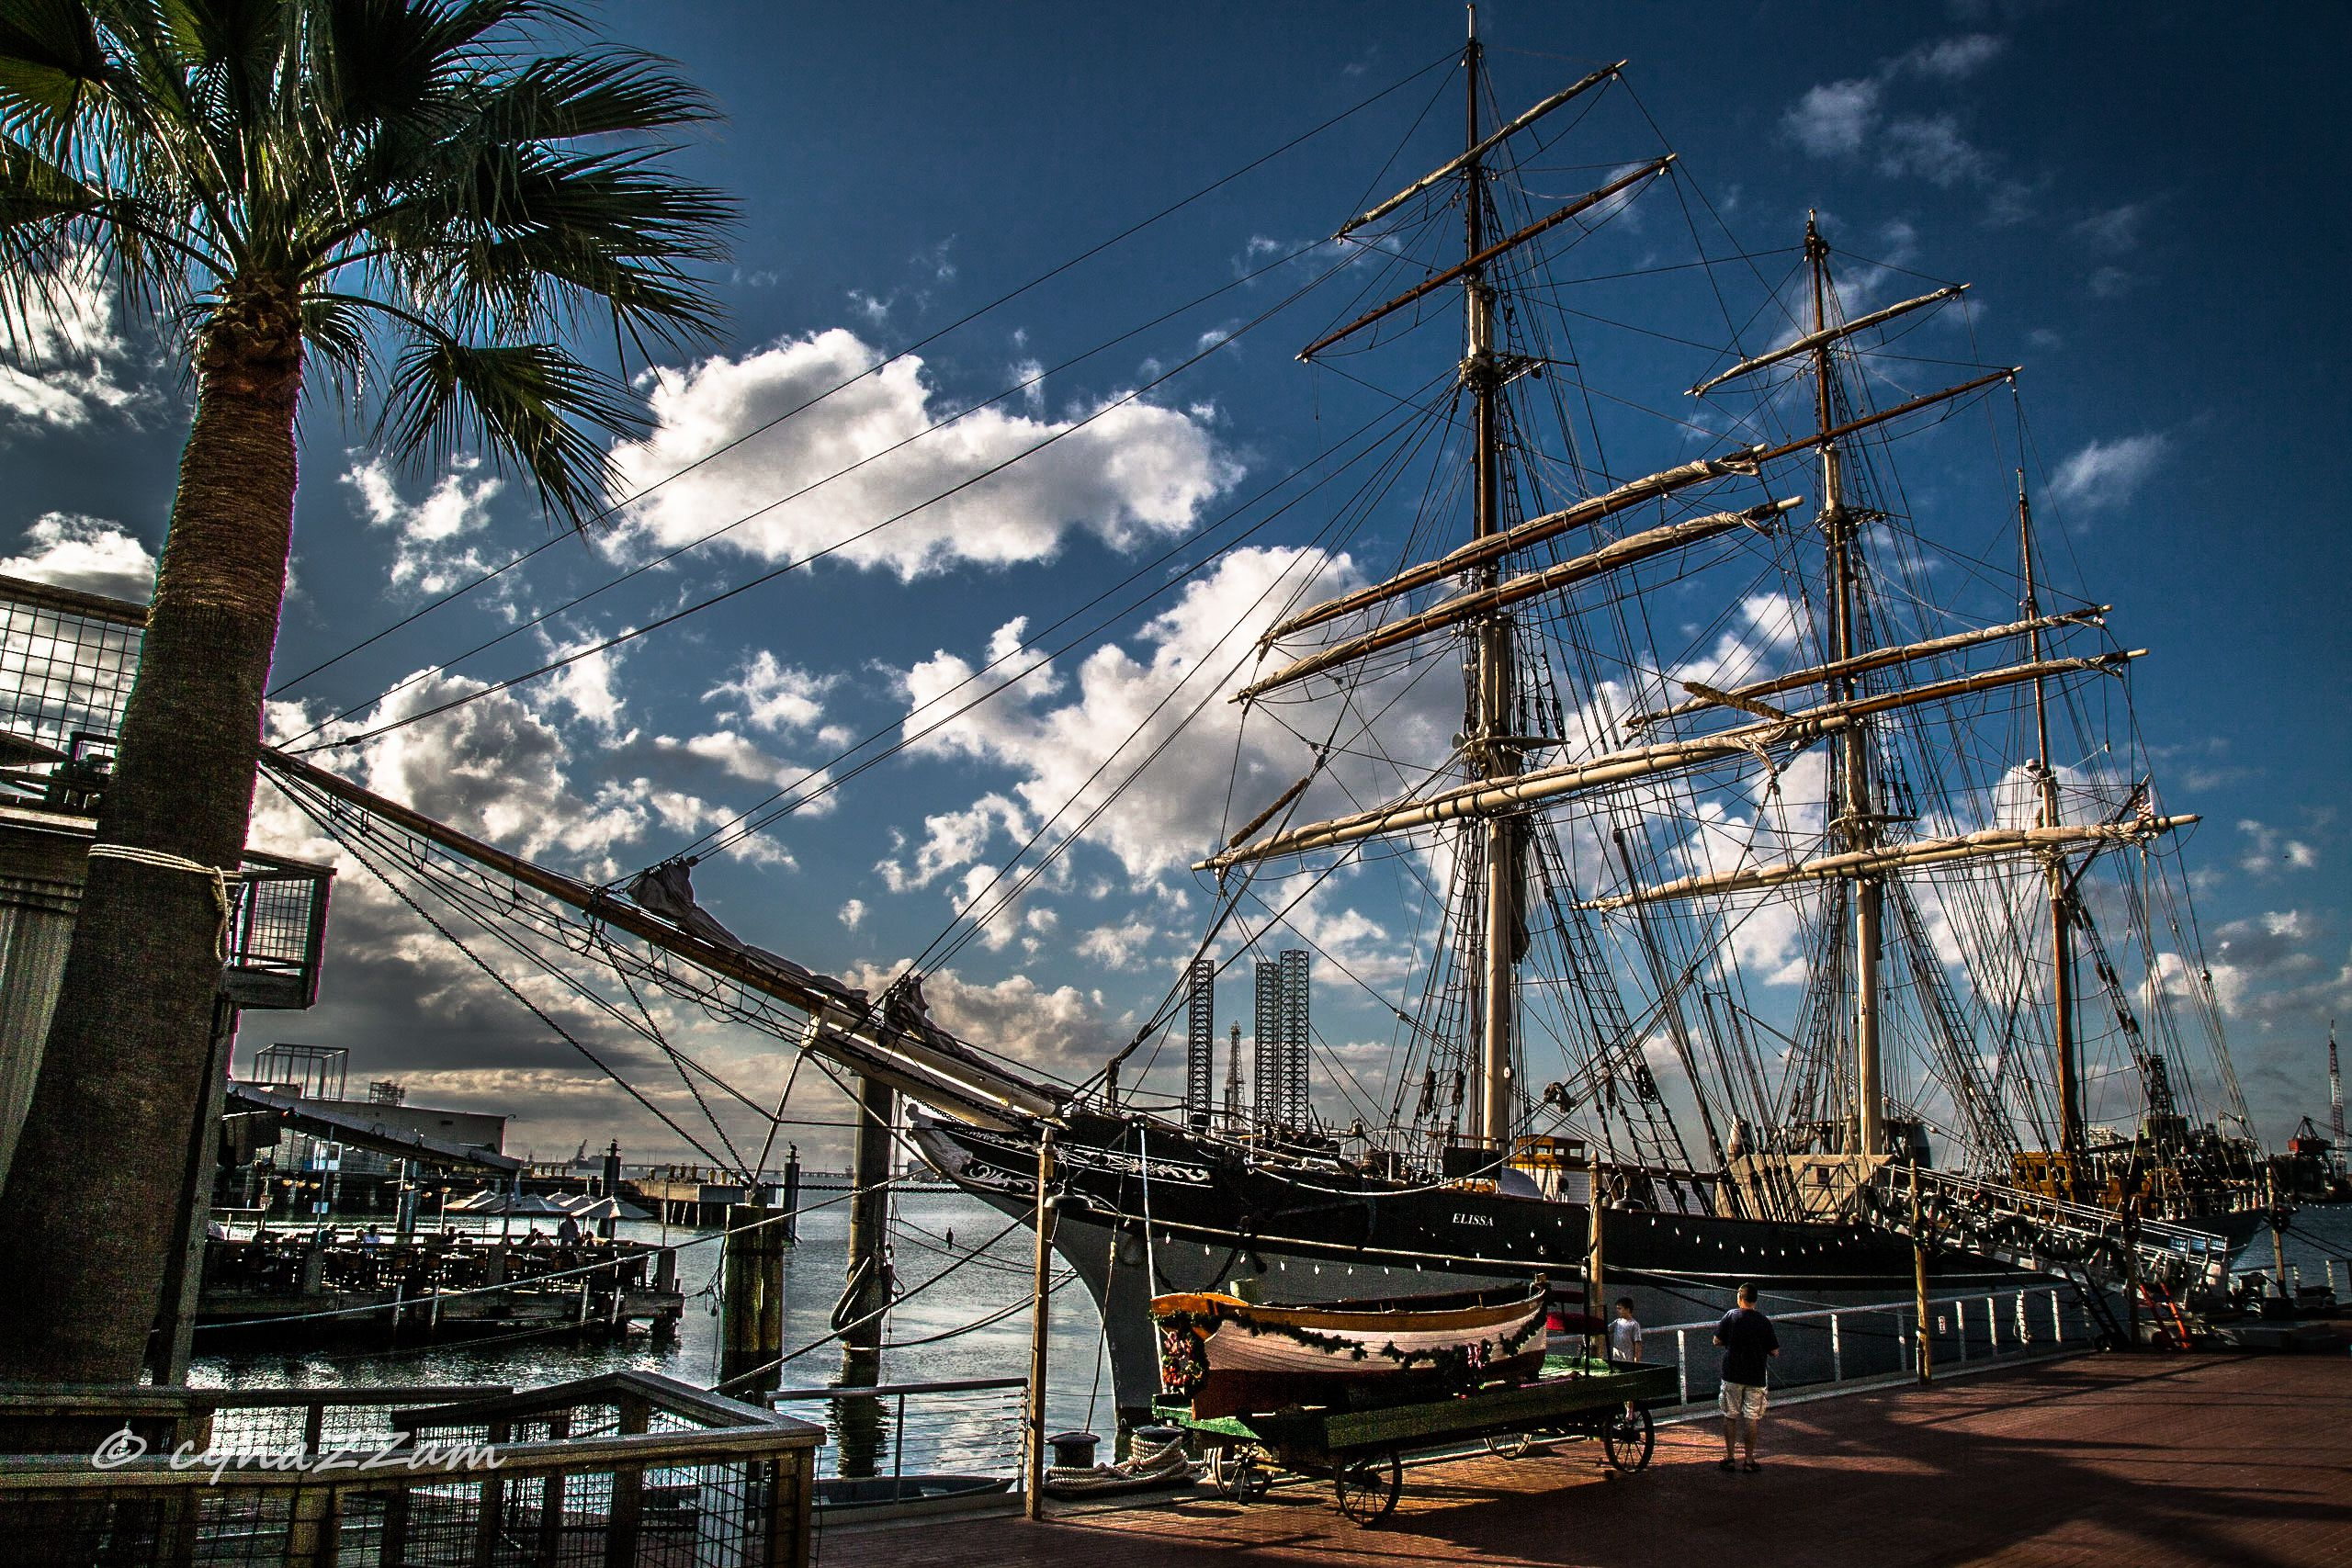 The Elissa at the Seaport Museum in Galveston.